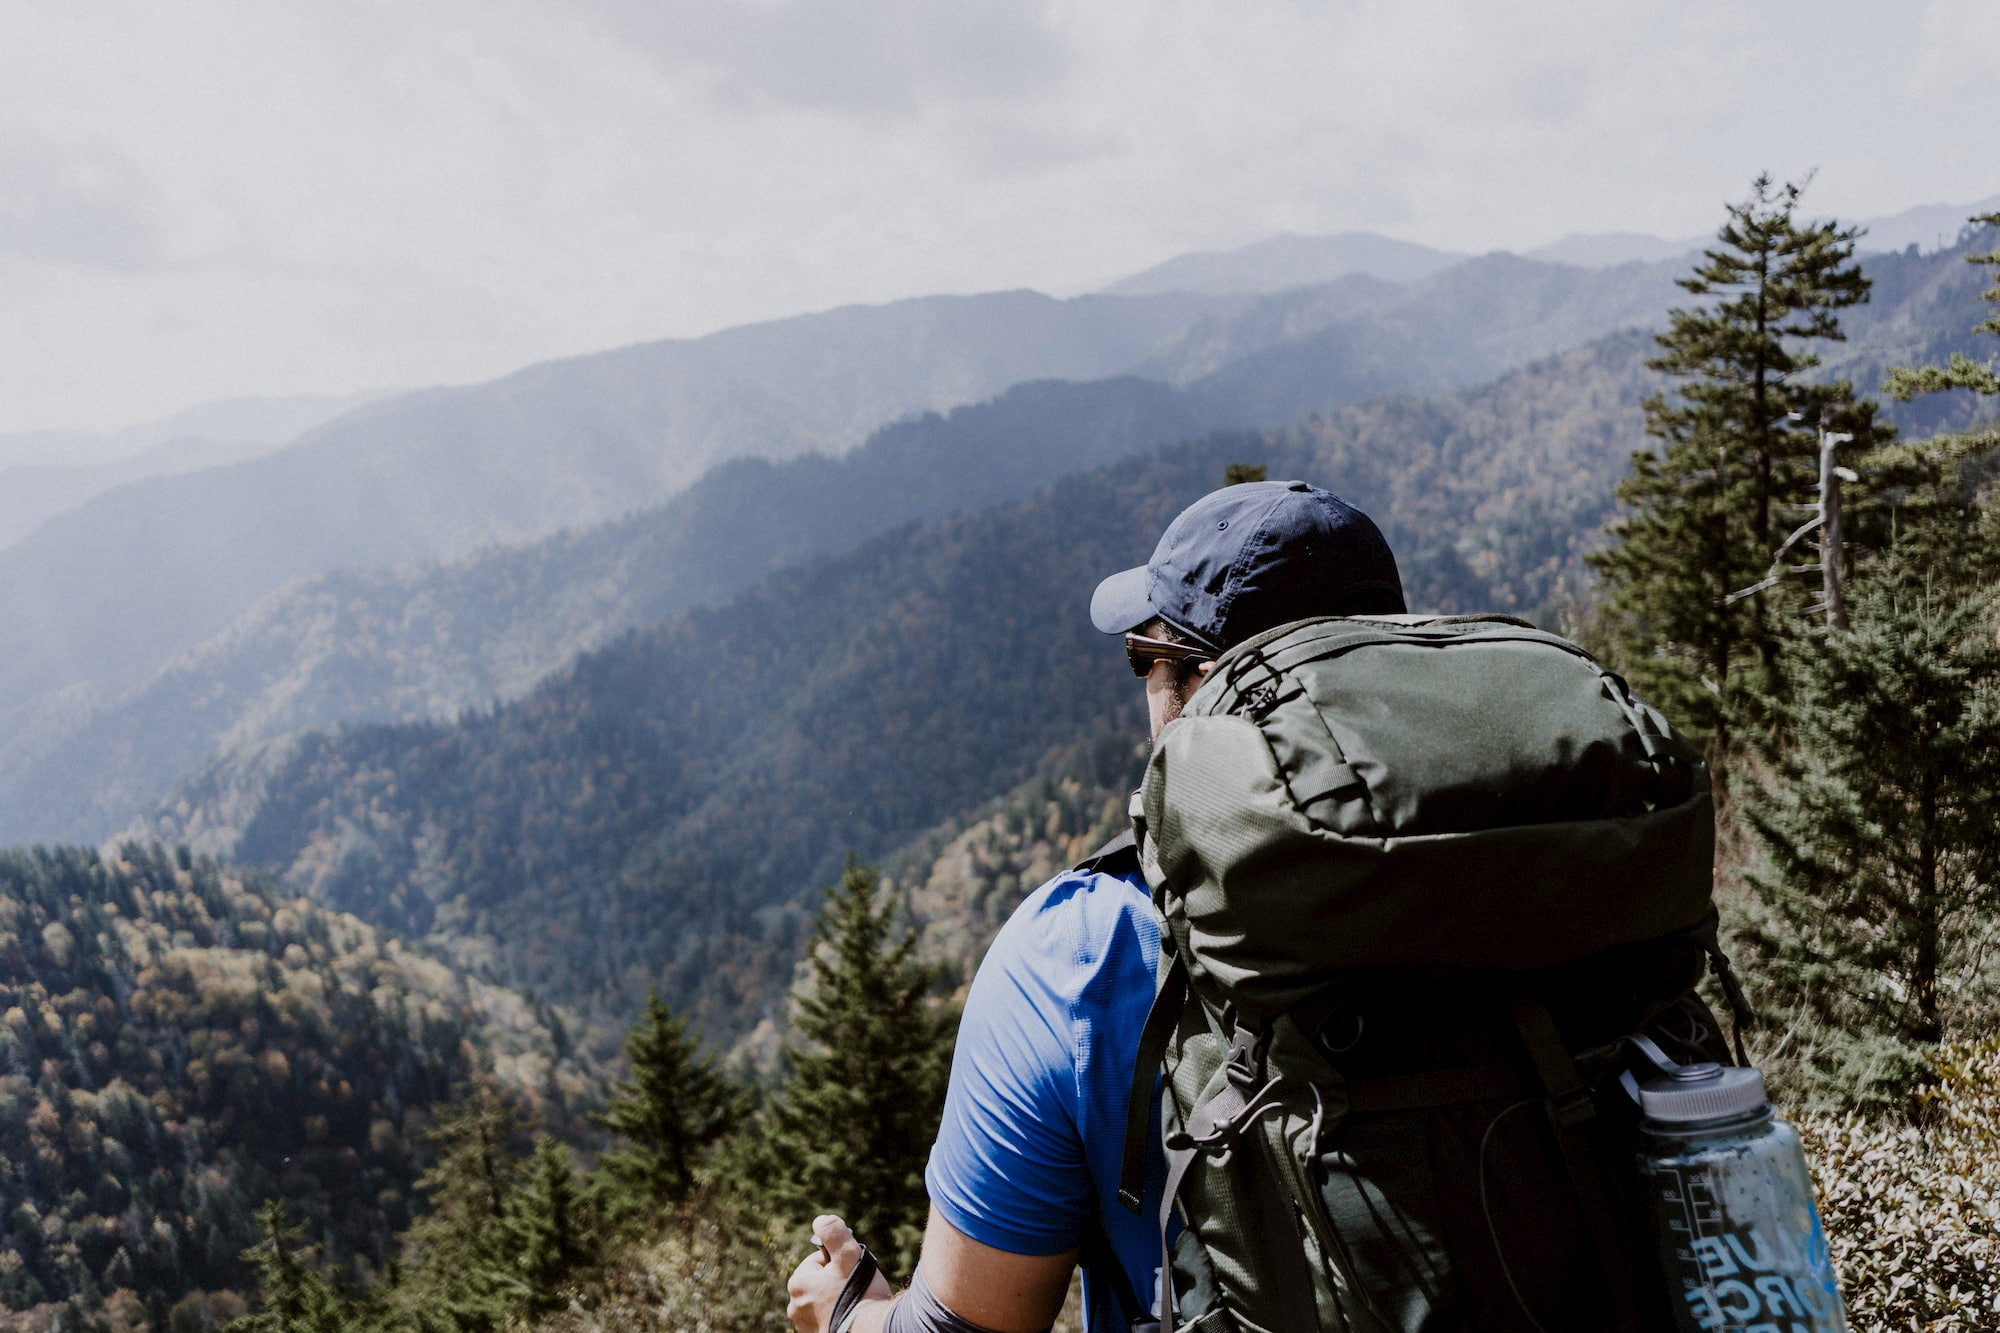 How Long Does It Take To Hike The Appalachian Trail?